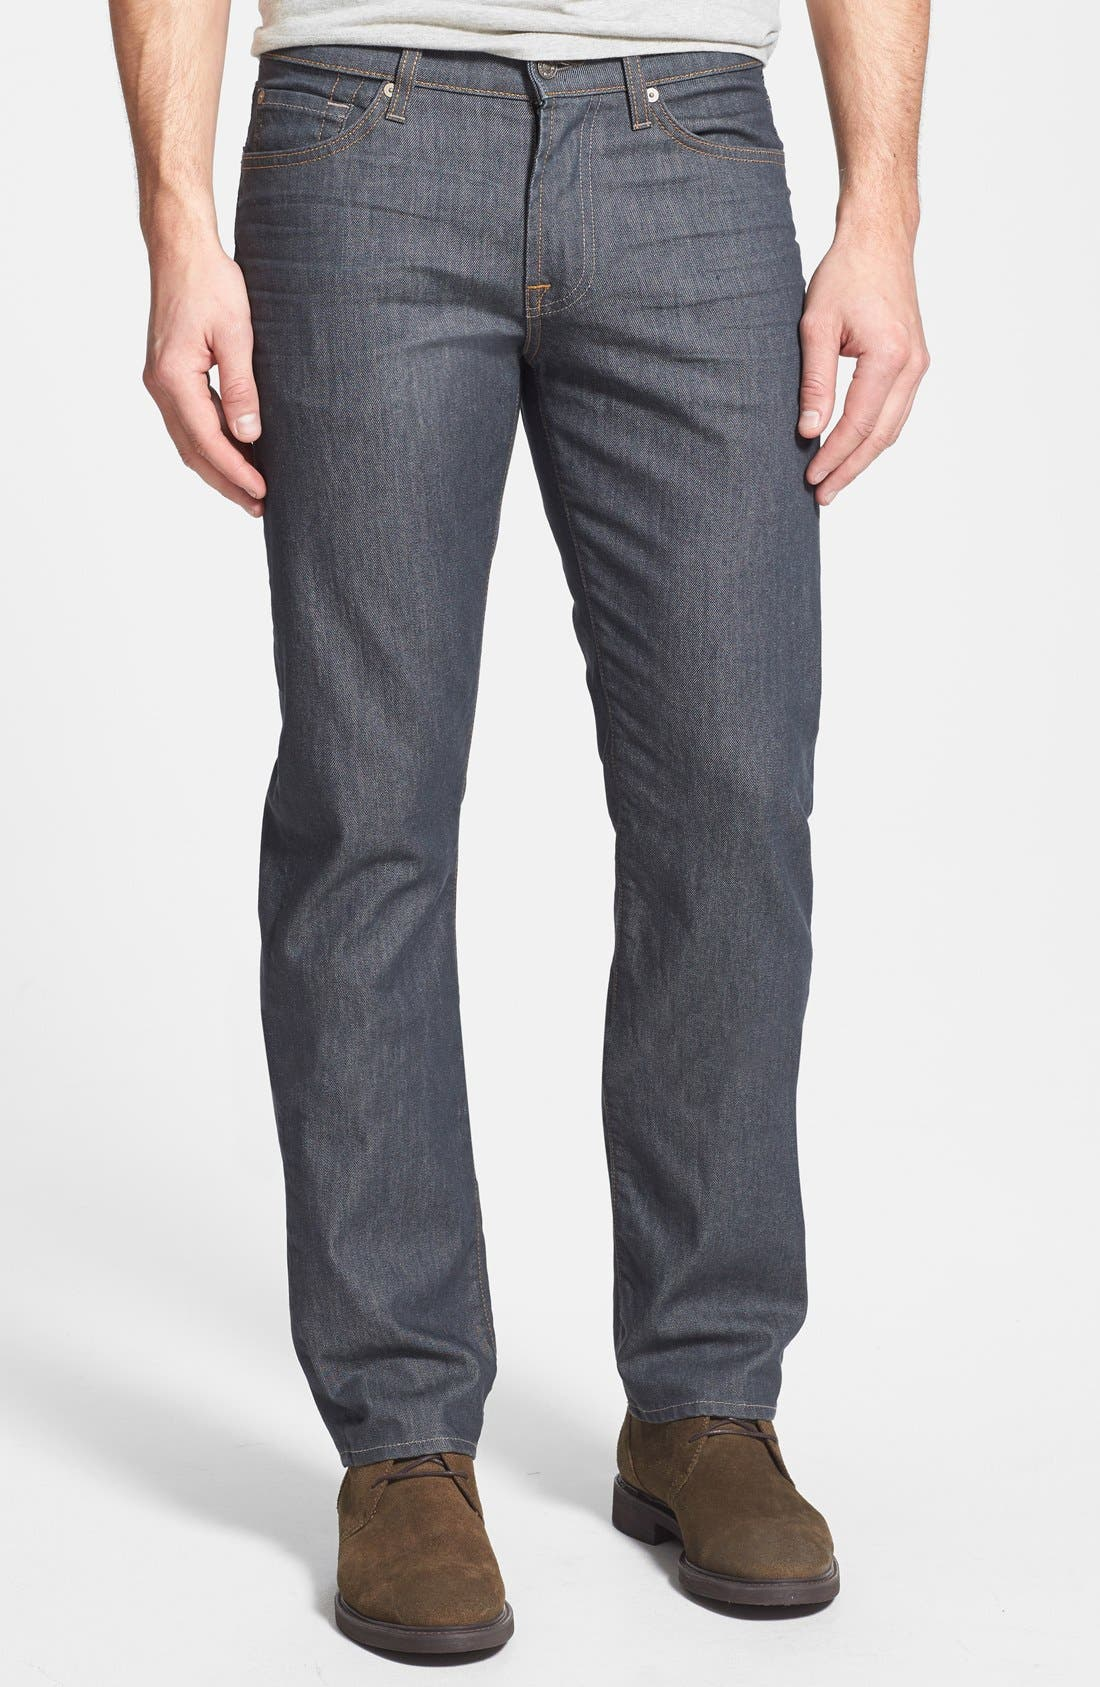 Alternate Image 1 Selected - 7 For All Mankind® 'Slimmy' Slim Straight Leg Jeans (Summer Haze)